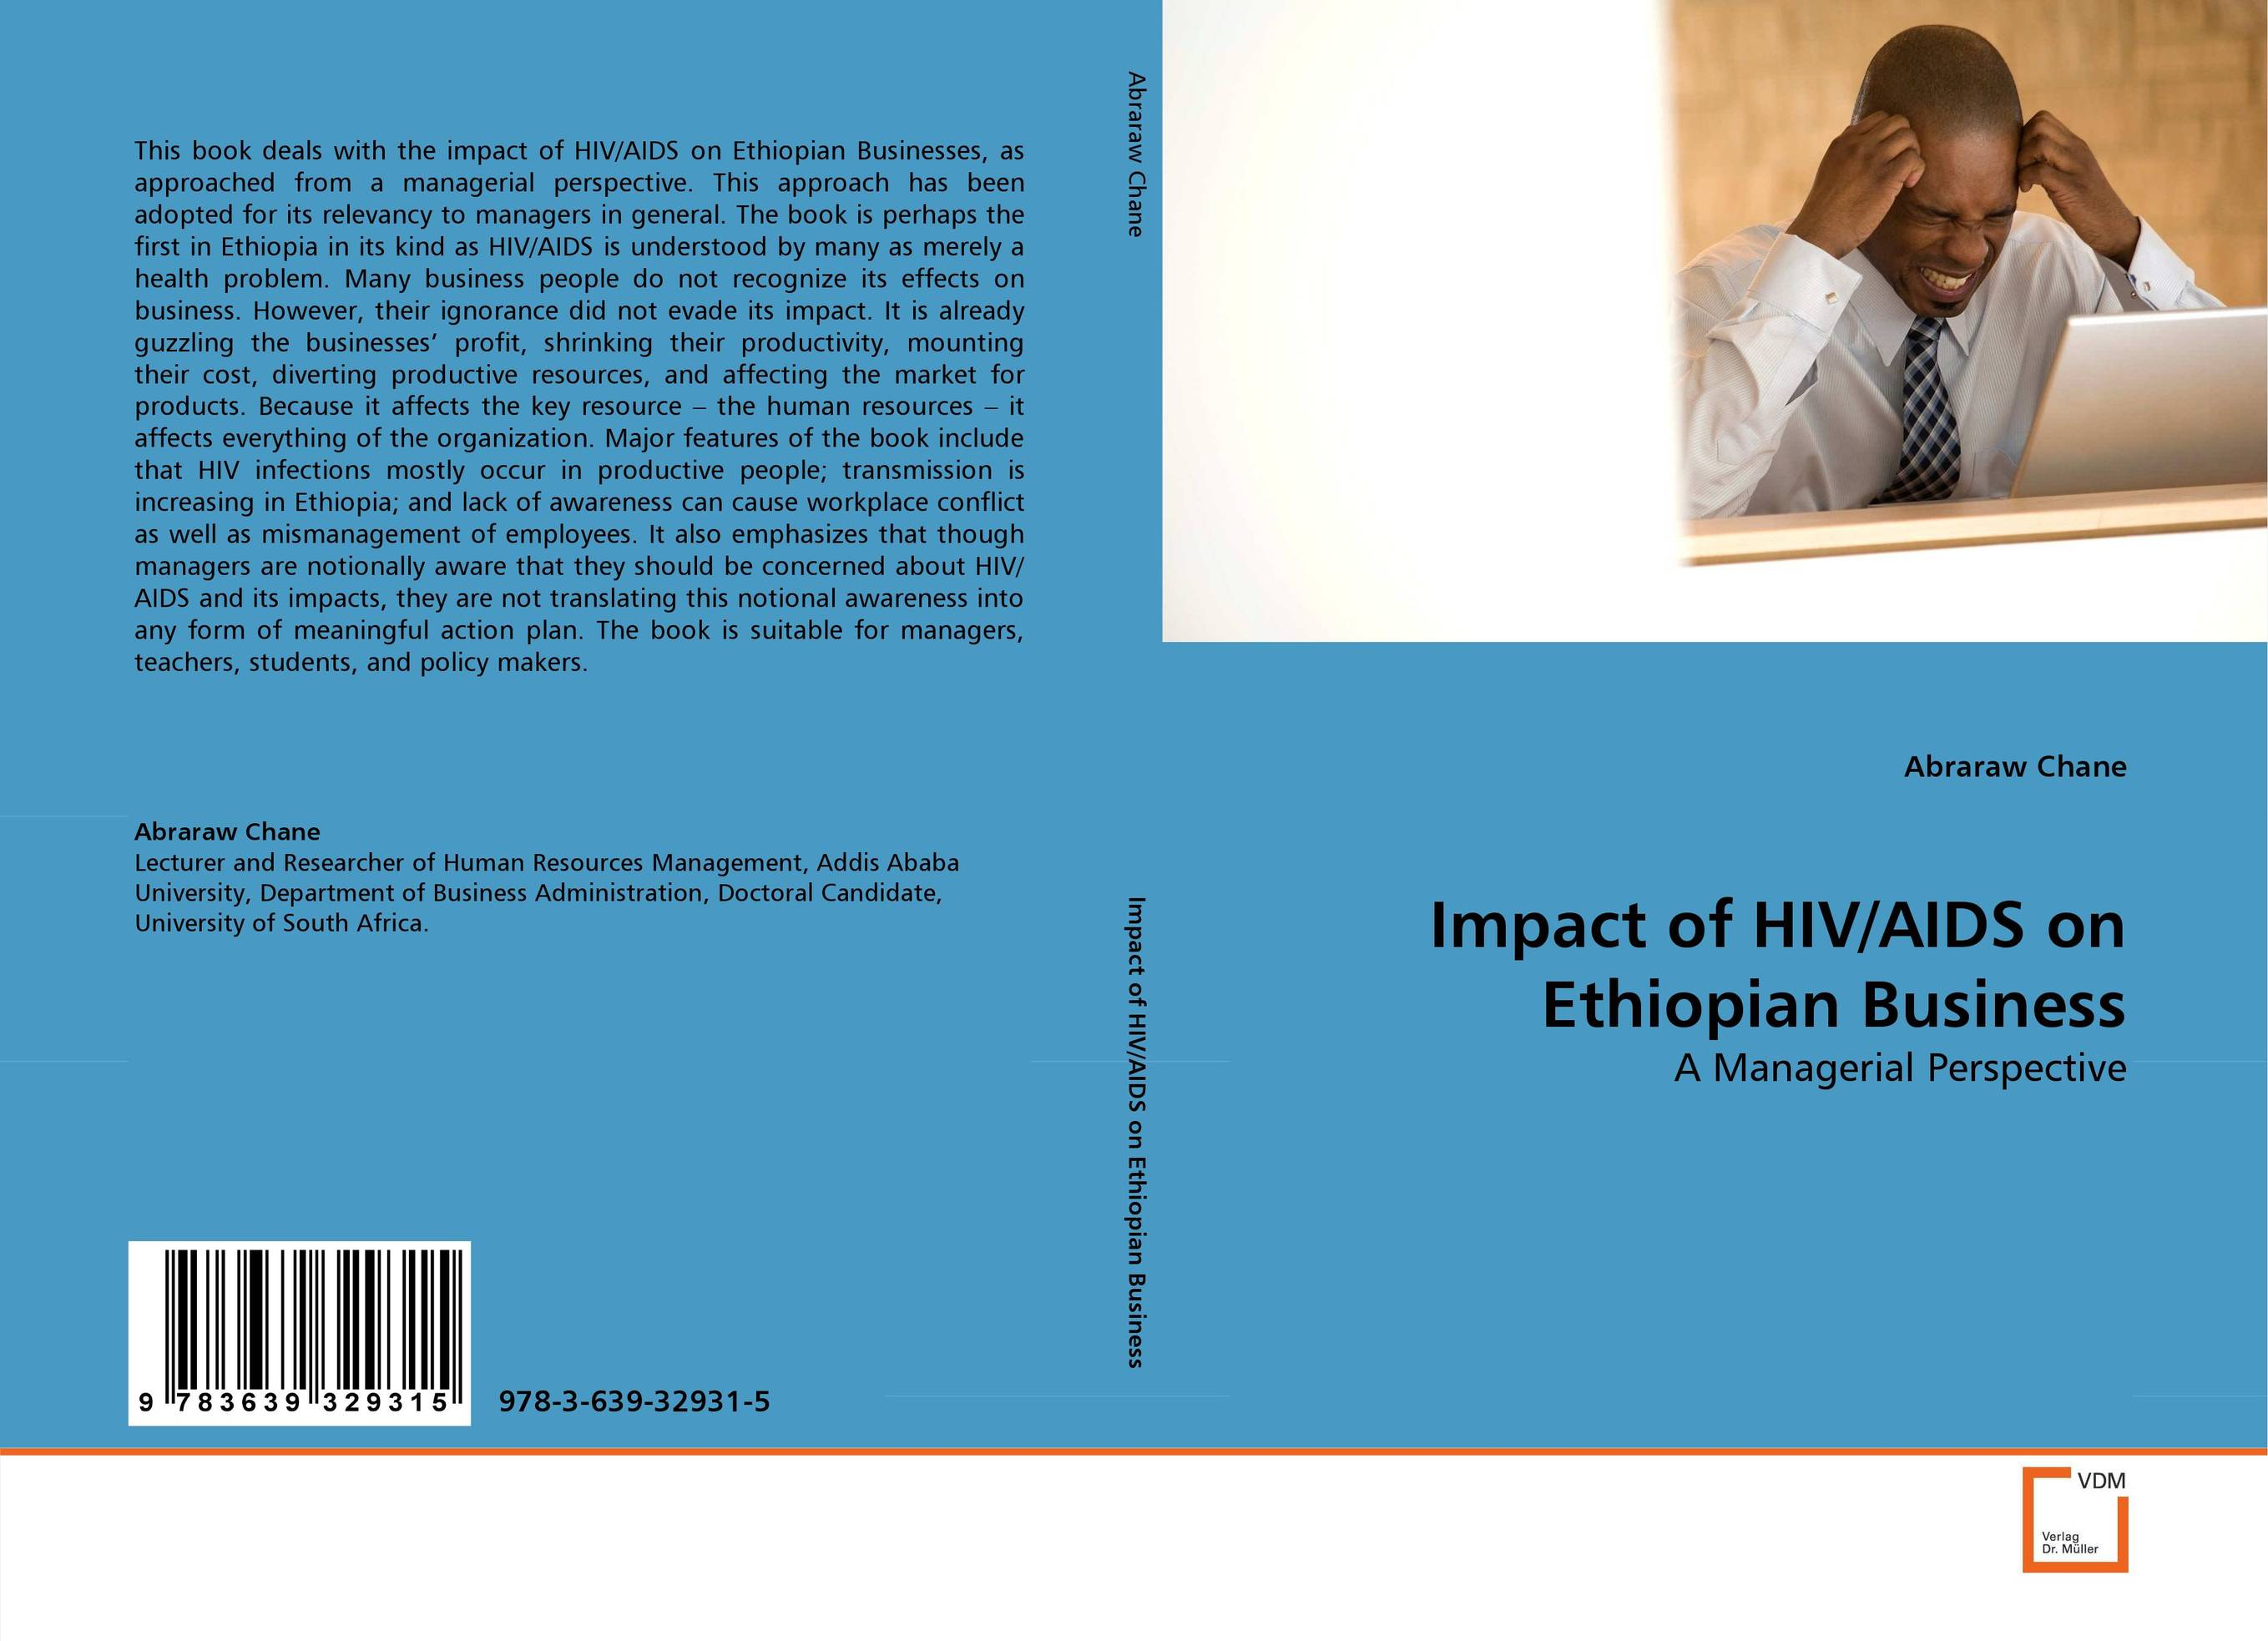 Impact of HIV/AIDS on Ethiopian Business illness as metaphor and aids and its metaphors